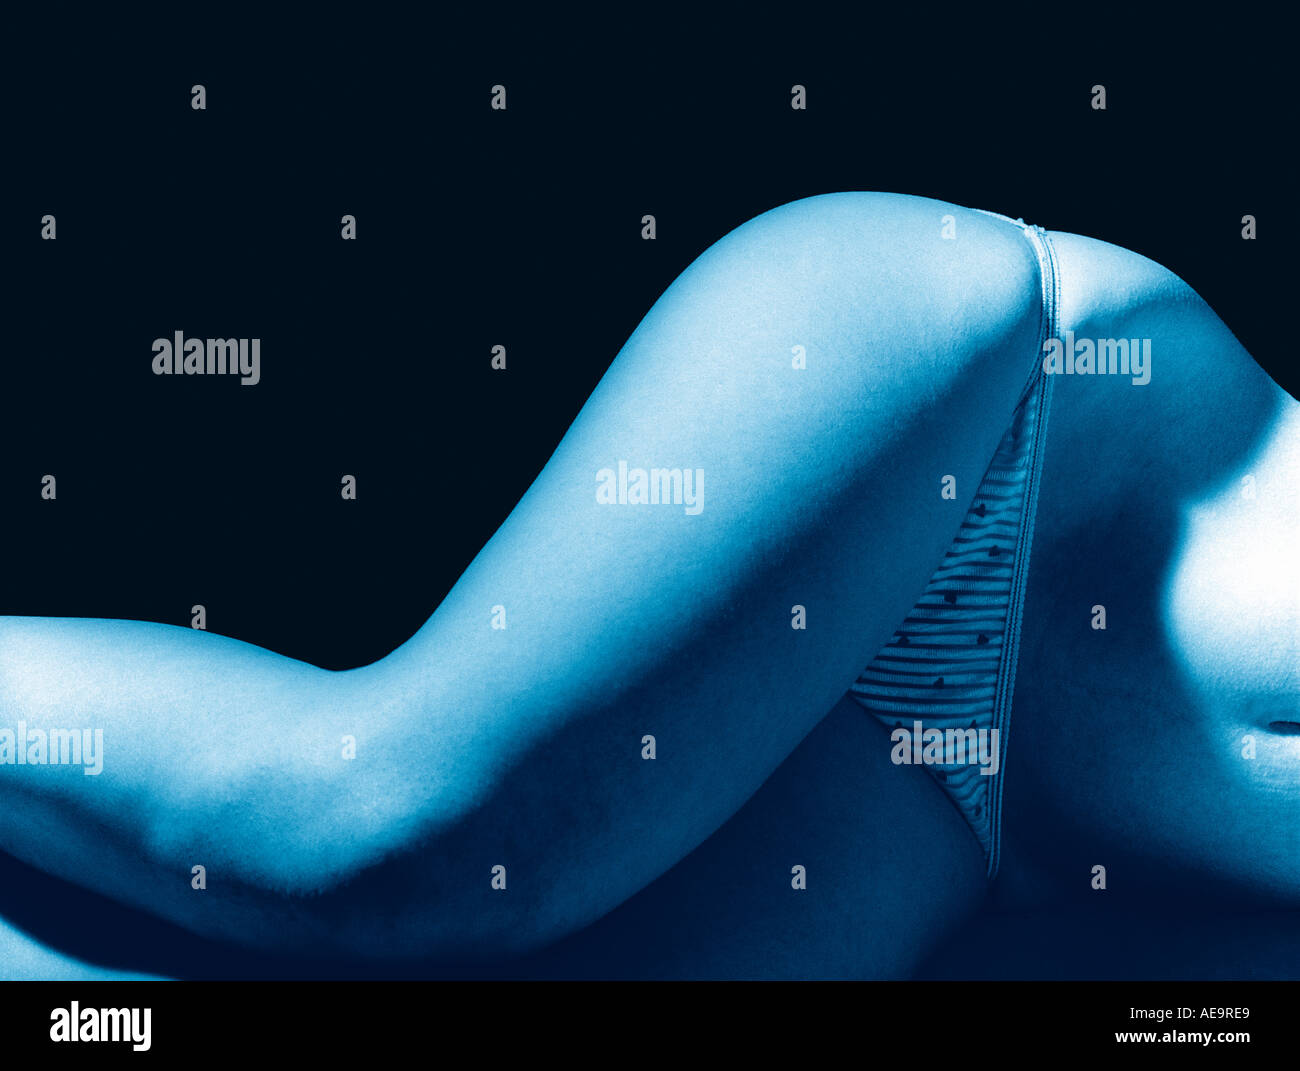 female torso detail blue colour abstract knickers reclining black and white graphic - Stock Image